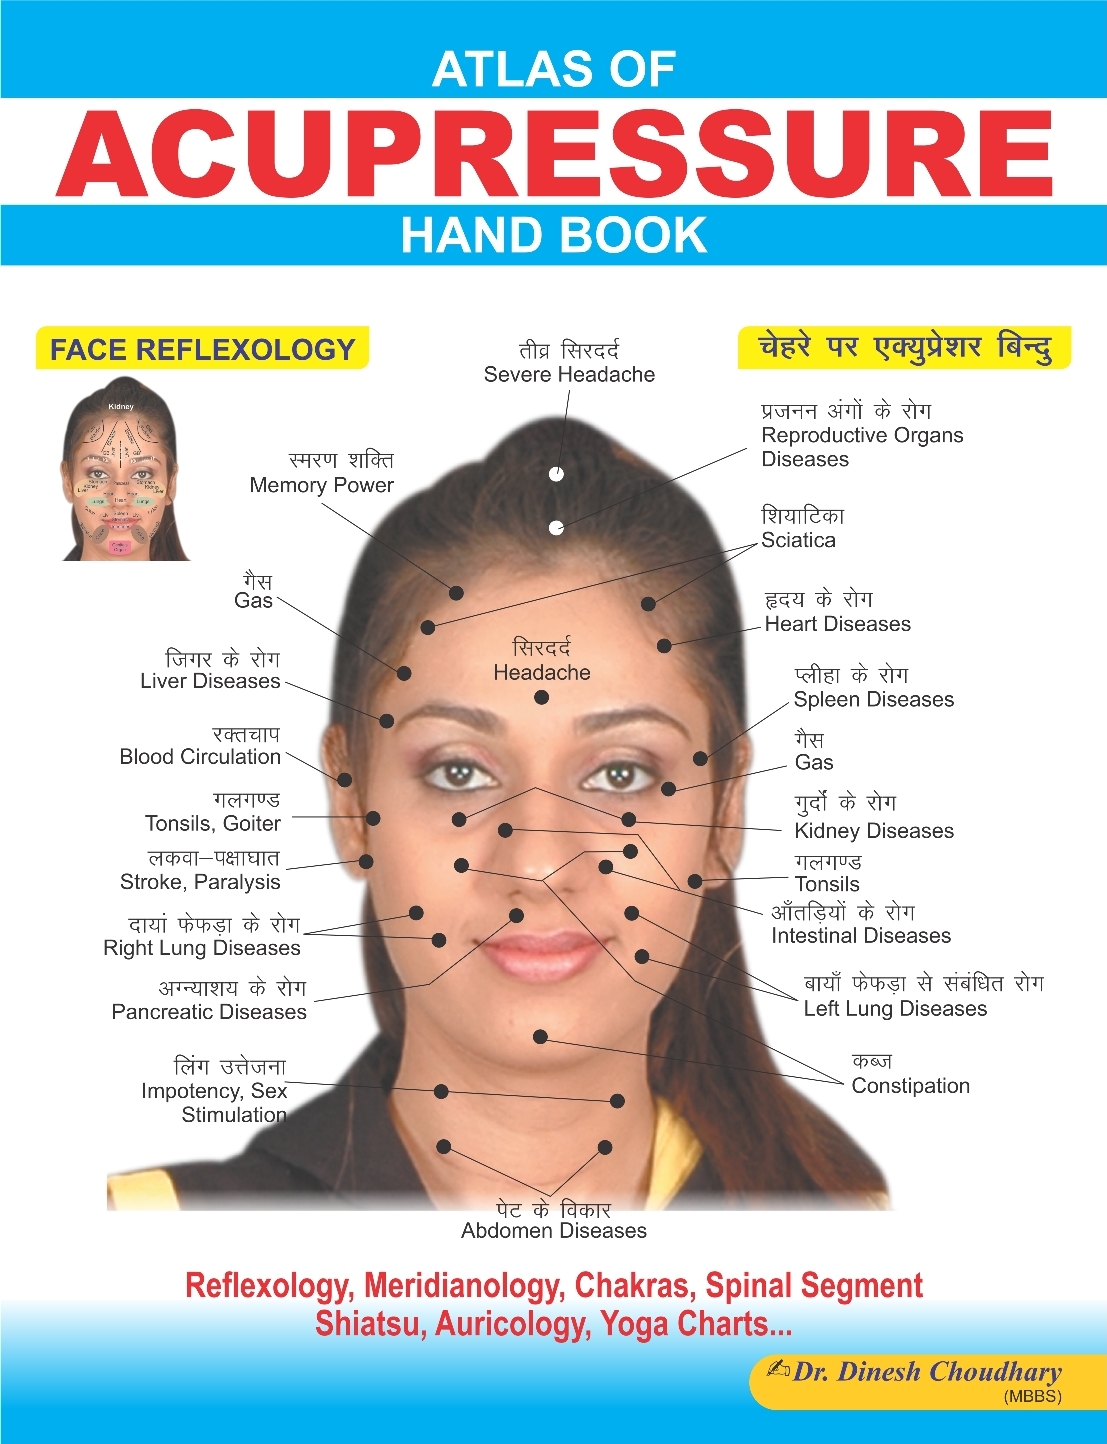 Atlas of Acupressure - Hand Book  - 571